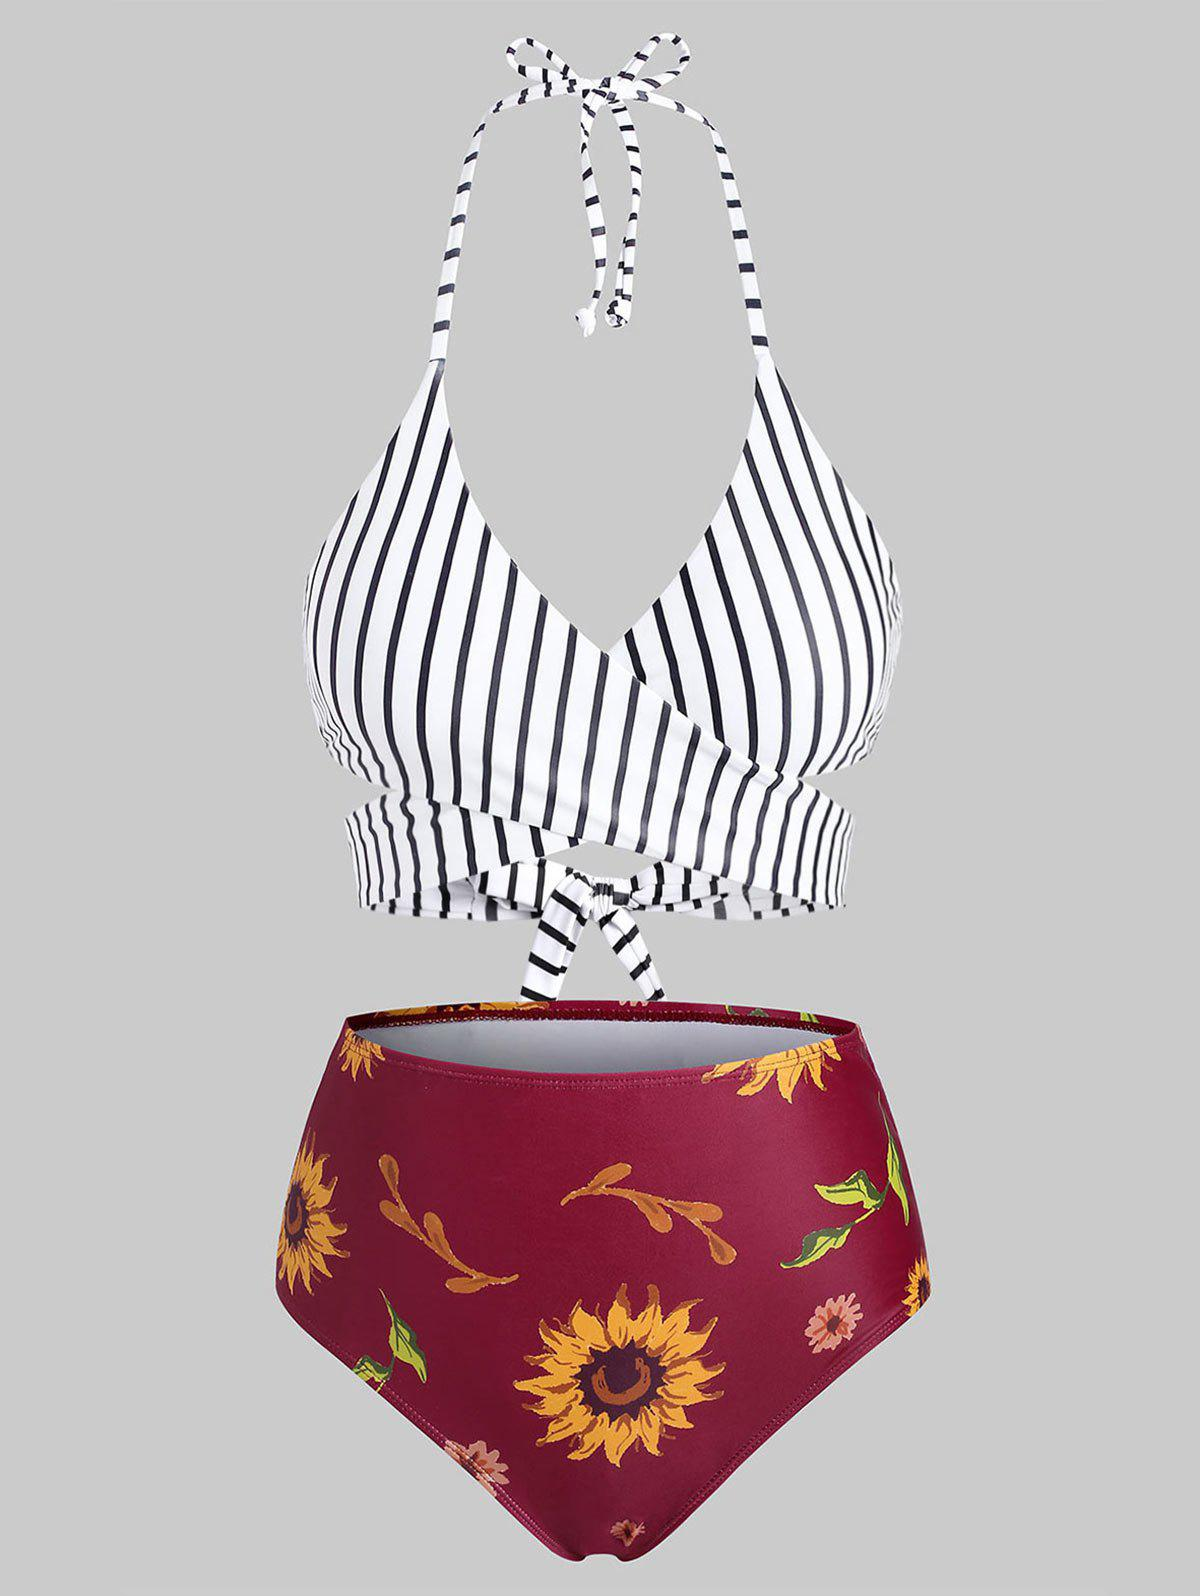 Criss Cross Wrap Stripes Sunflower Bikini Swimwear - RED WINE 2XL